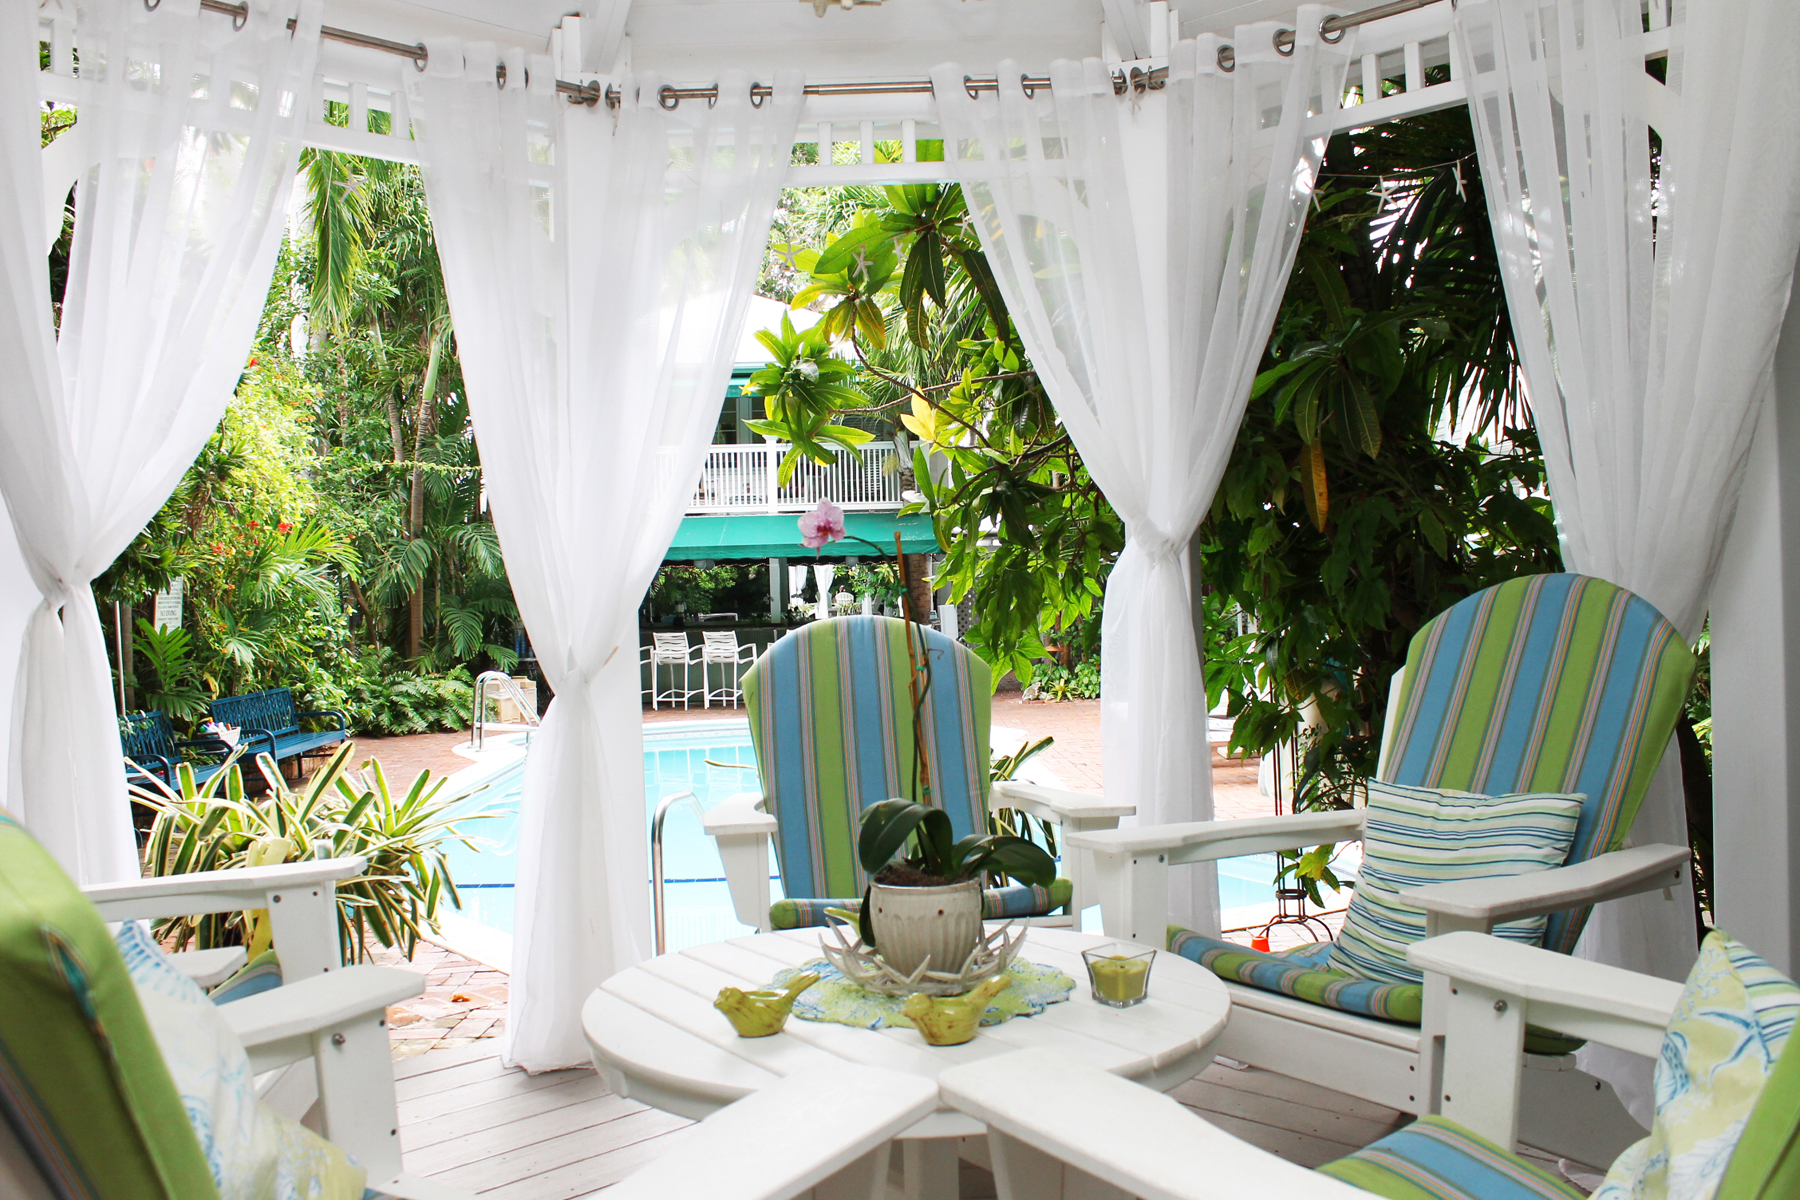 Exceptional The Gardens Hotel Key West. Photo: Paula Bendfeldt Diaz, All Rights  Reserved.